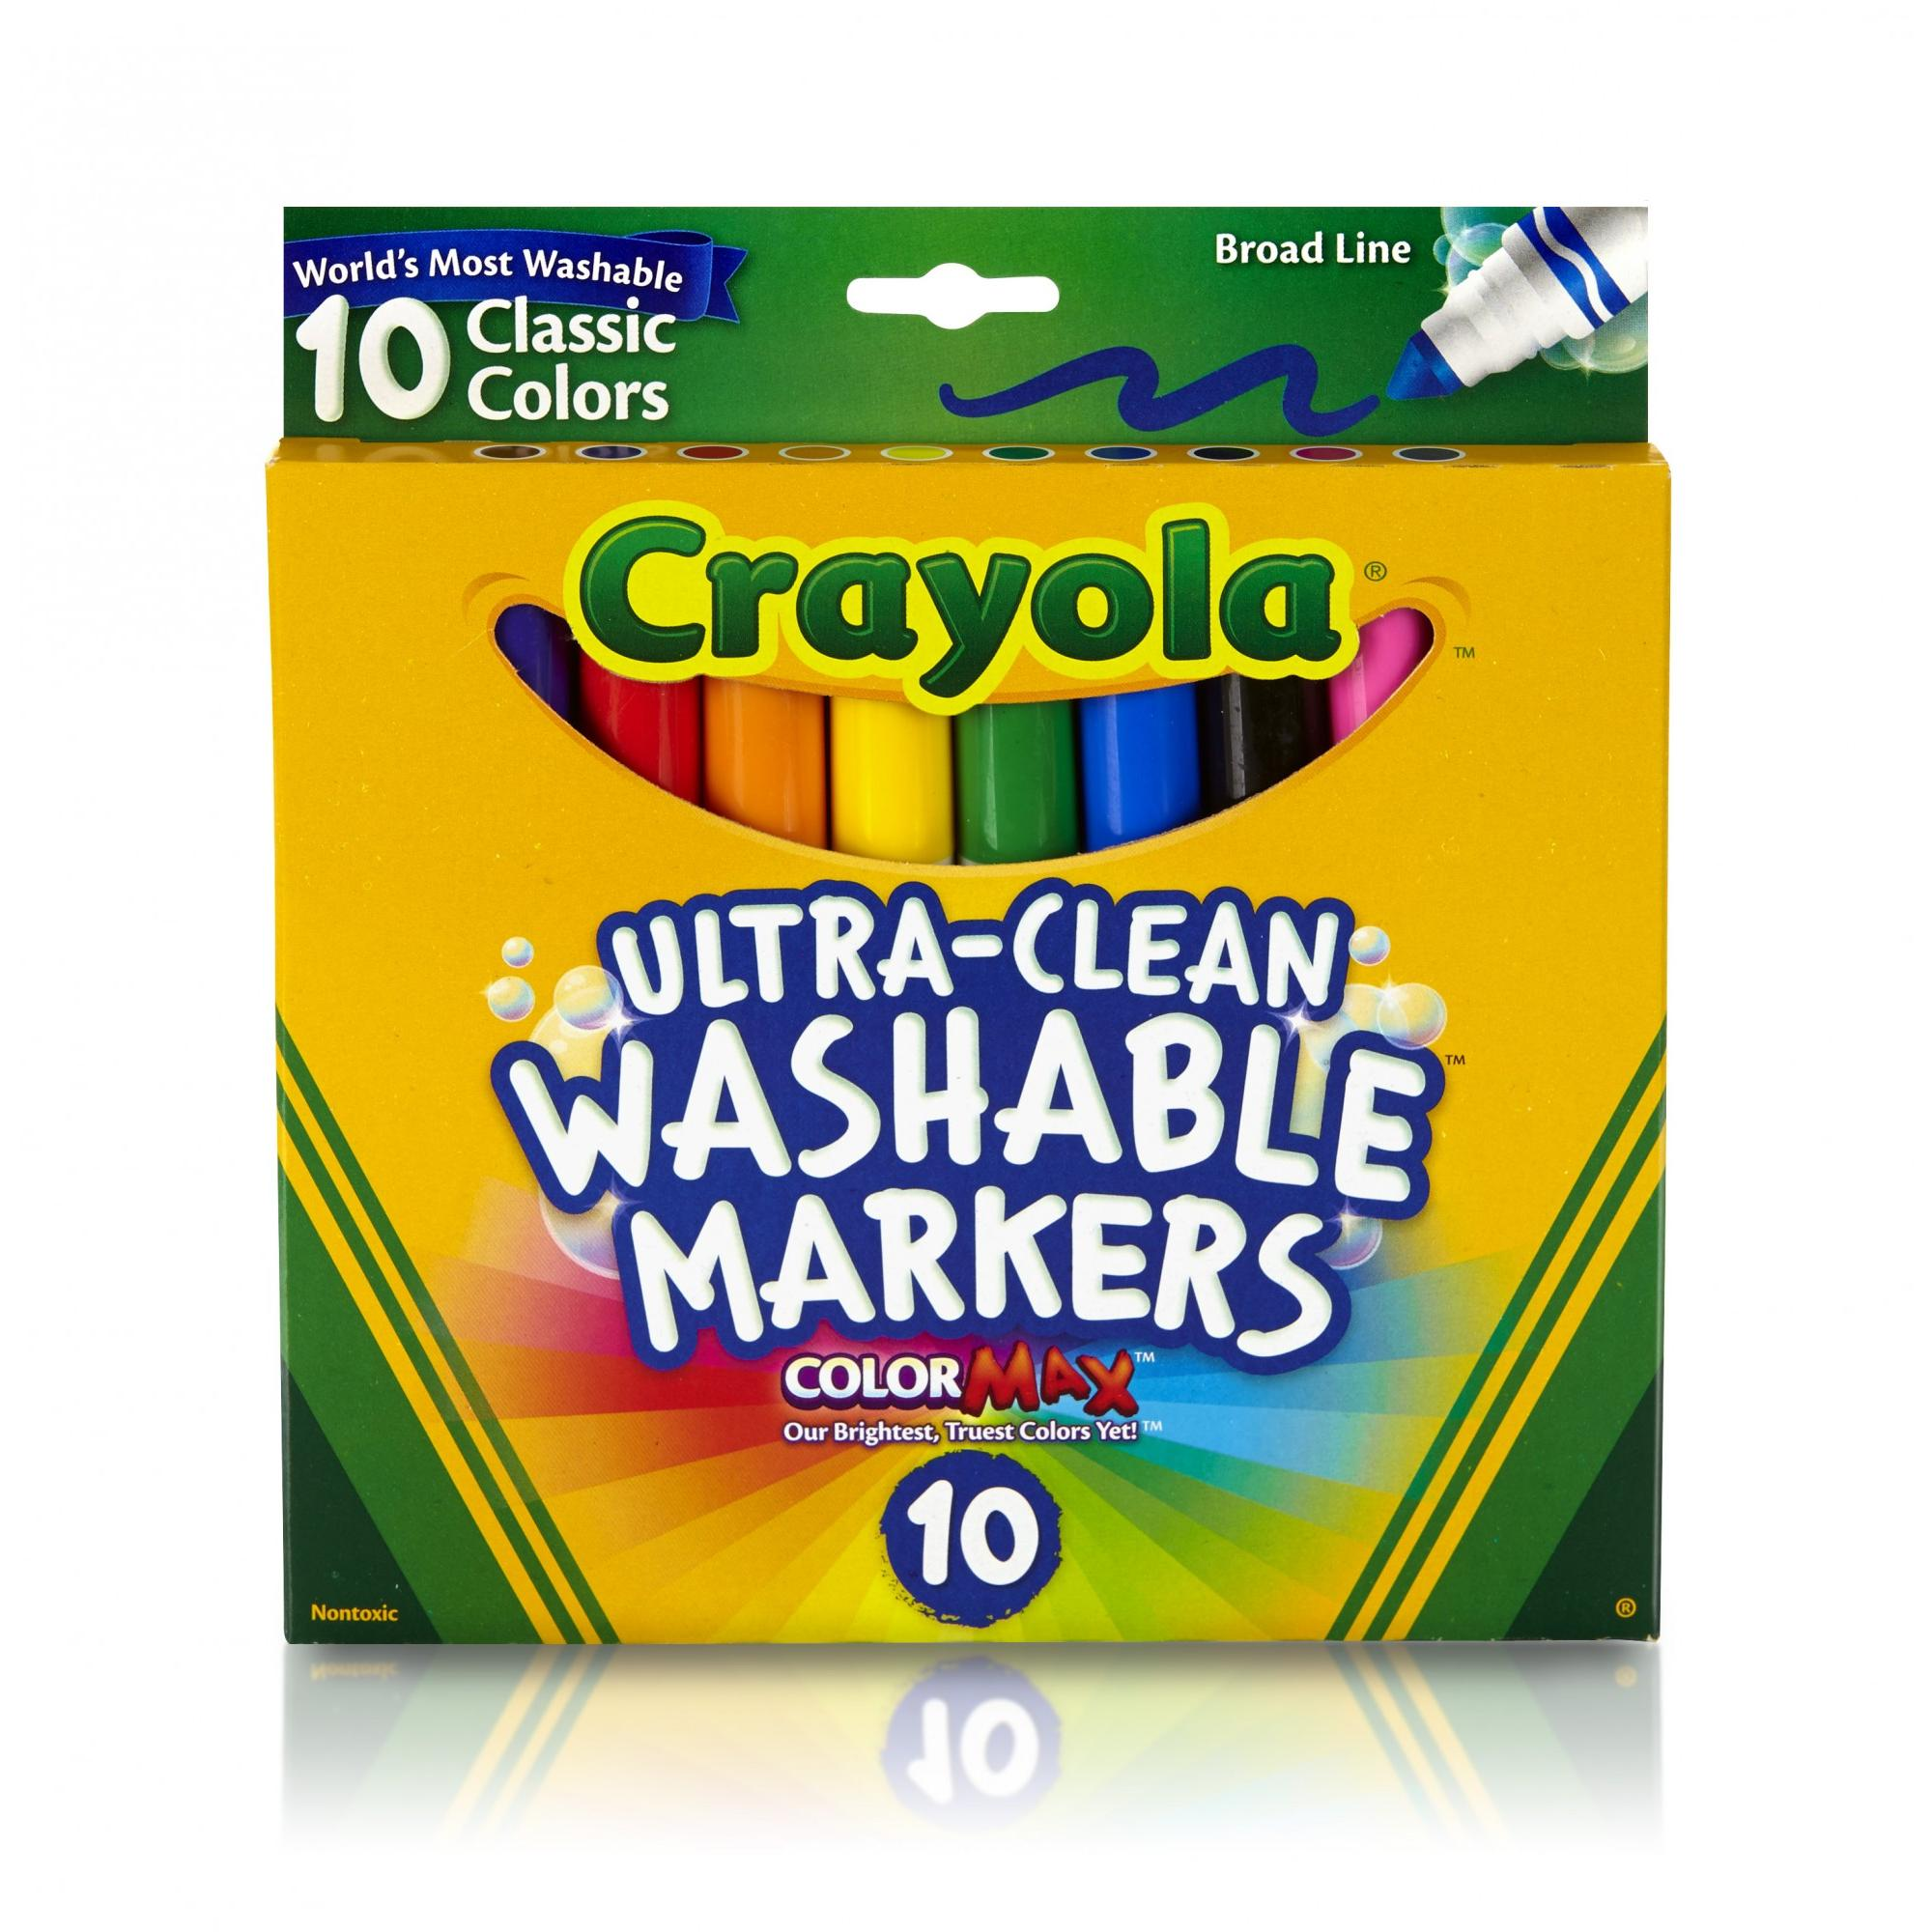 Crayola Ultra-Clean Broad Line Markers, 10-Count